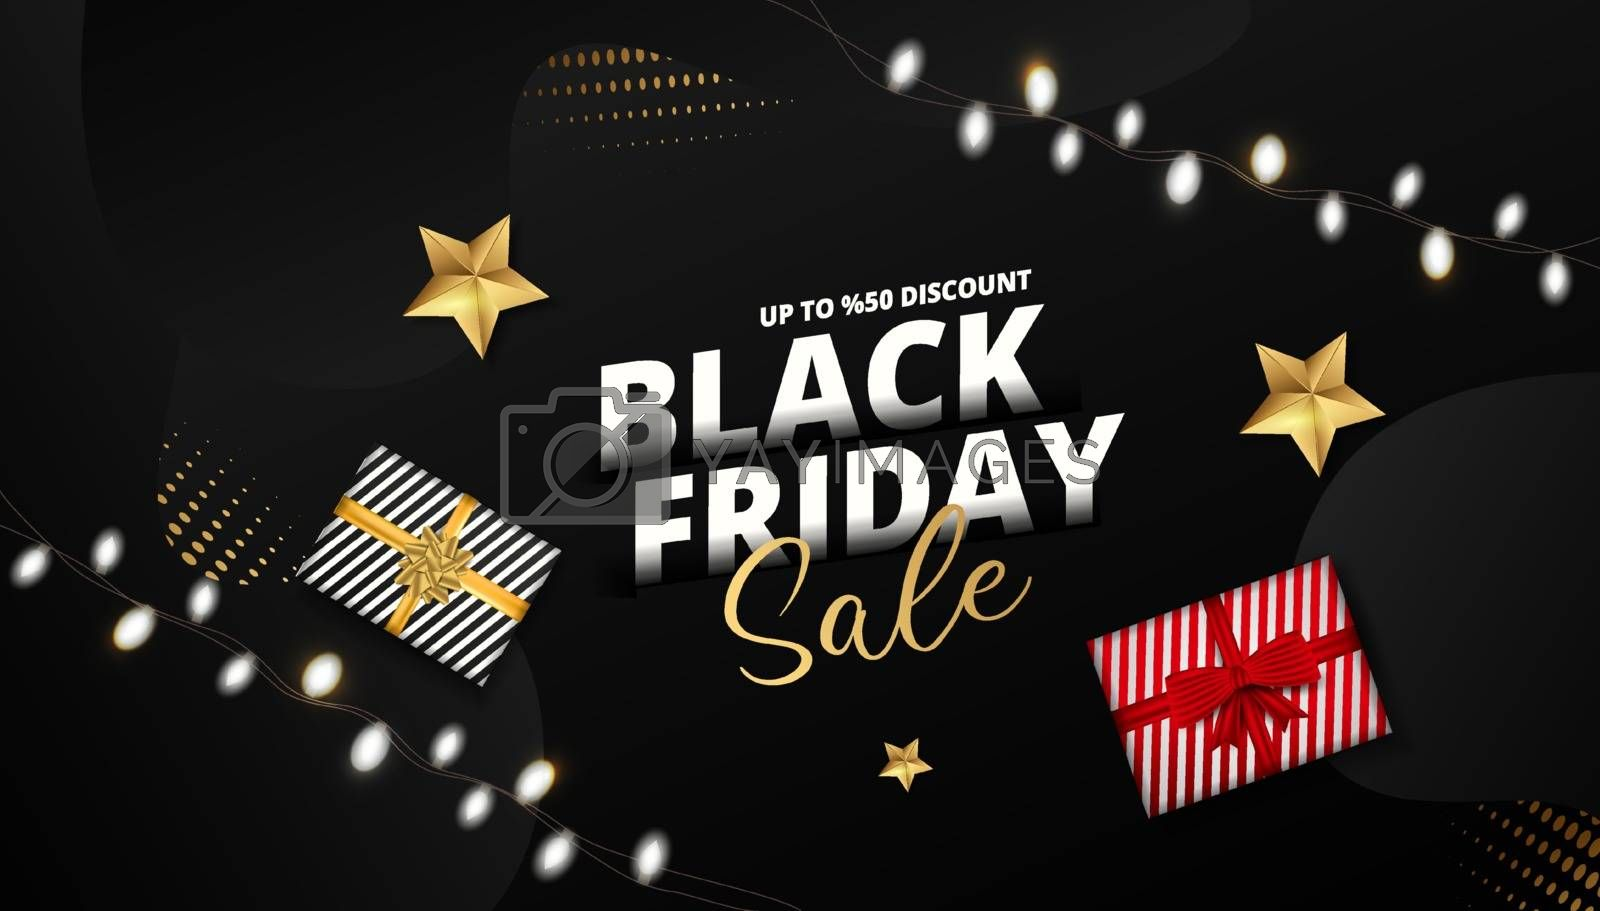 Website header or banner design decorated with top view of gift boxes, garland, golden stars and 50% discount offer for Black Friday Sale.